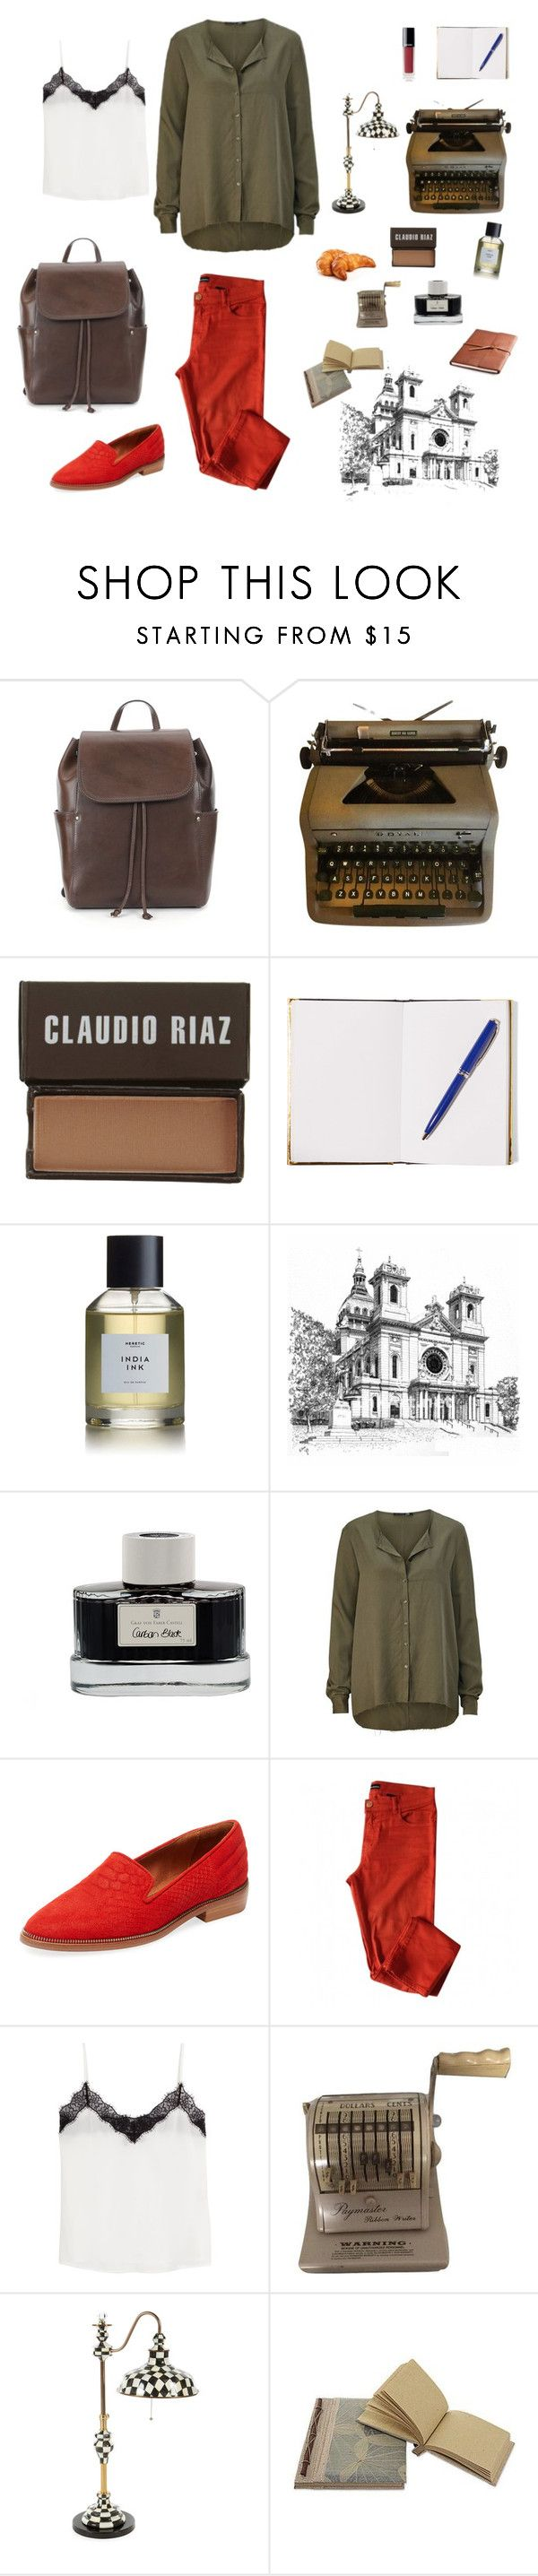 """""""R00M"""" by diabolissimo ❤ liked on Polyvore featuring Frye, Claudio Riaz, Tom Dixon, Heretic Parfum, Faber-Castell, The Kooples, MacKenzie-Childs, NOVICA and ADAM"""